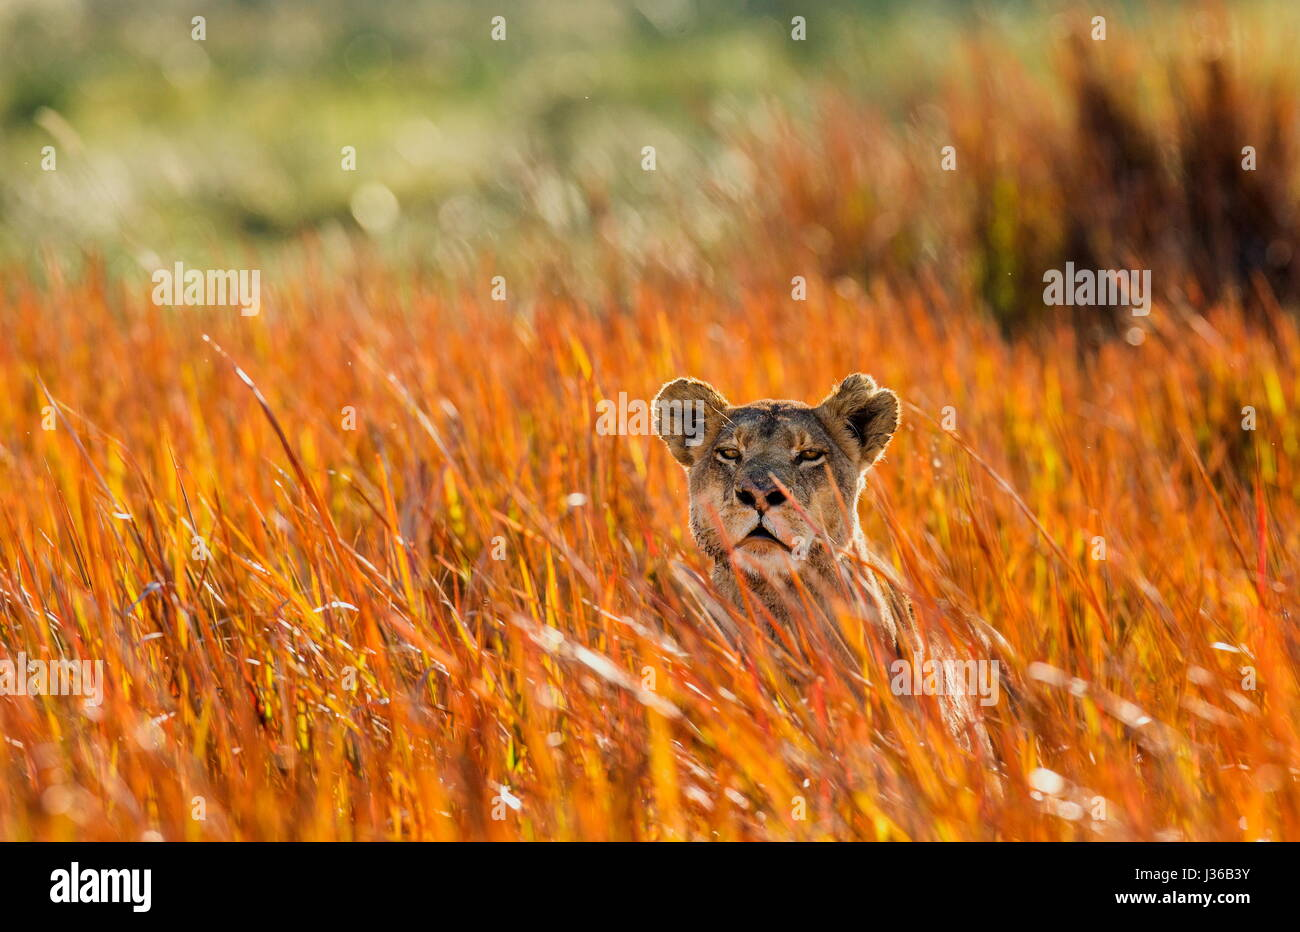 Lioness lying on the ground. Okavango Delta. An excellent illustration. - Stock Image